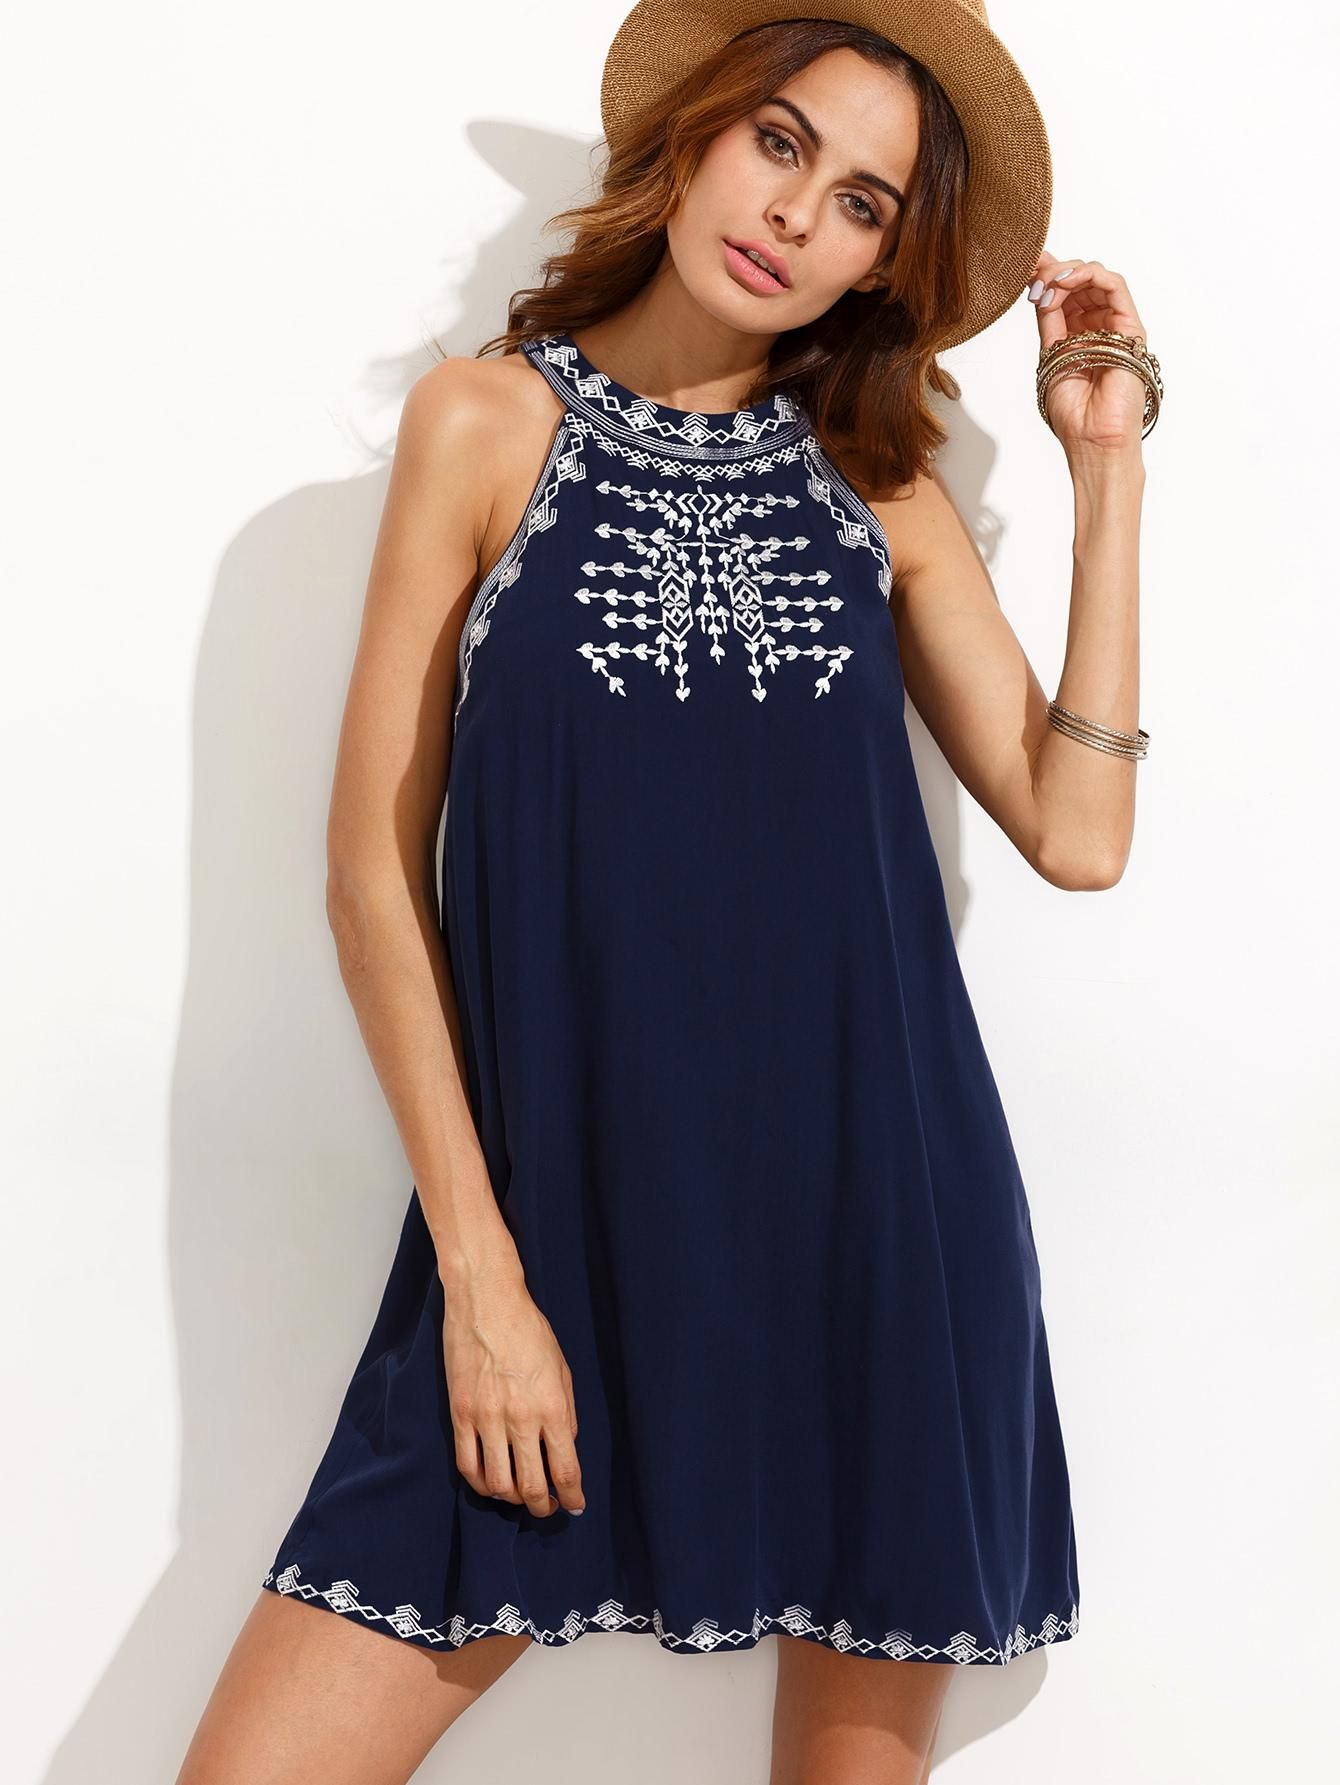 Romwe romwe navy embroidered cutout tie back sleeveless dress